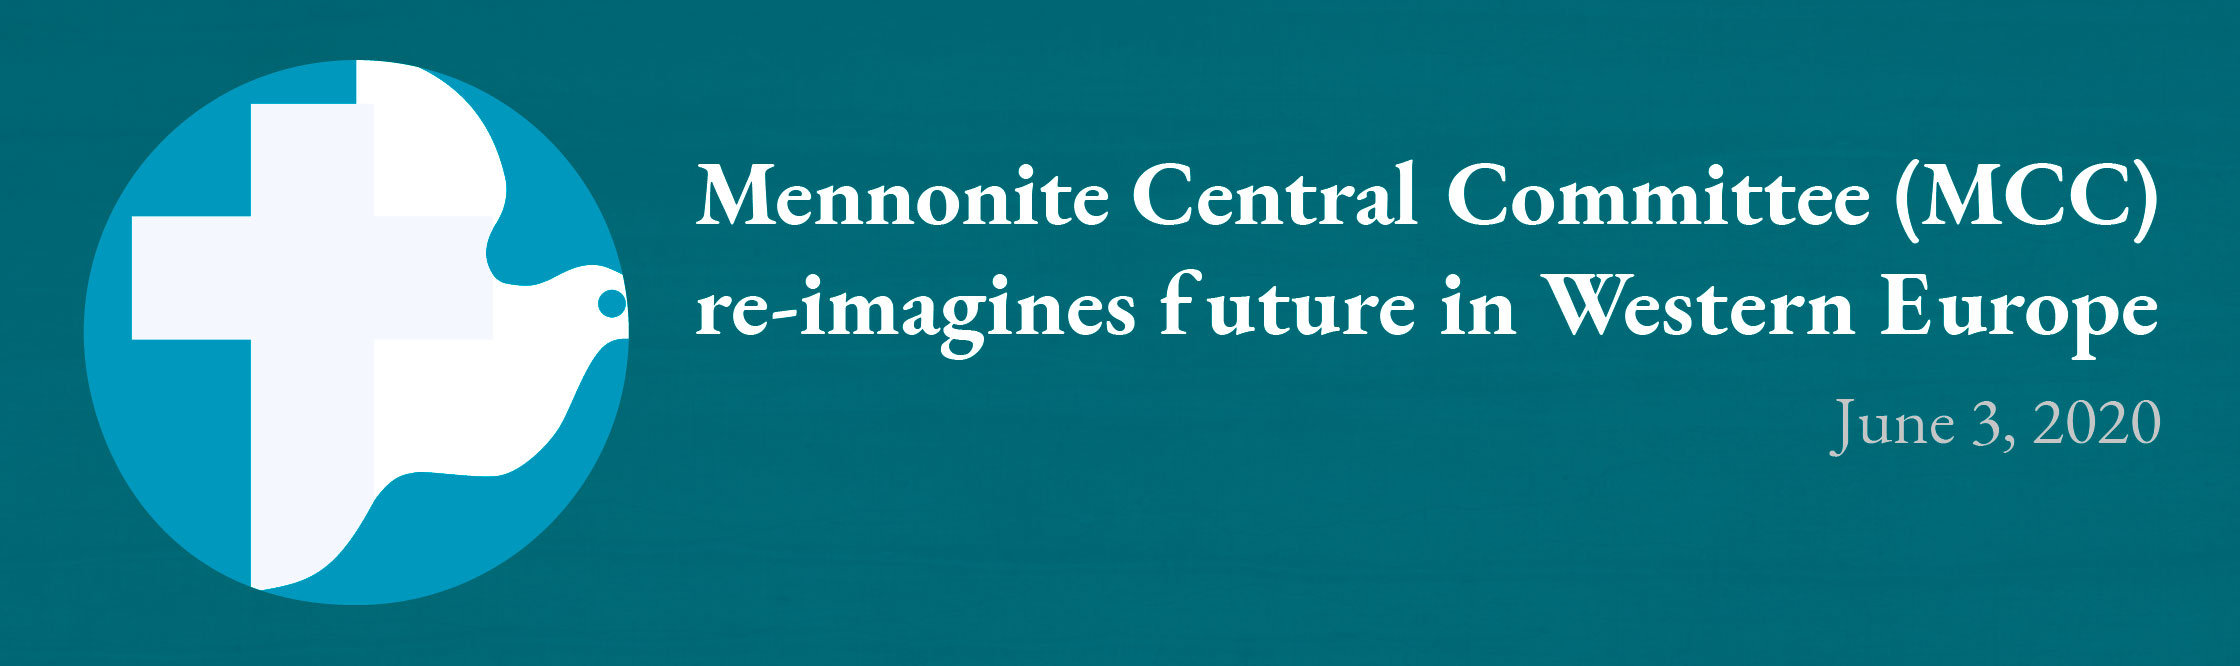 Mennonite Central Committee (MCC) re-imagines future in Western Europe